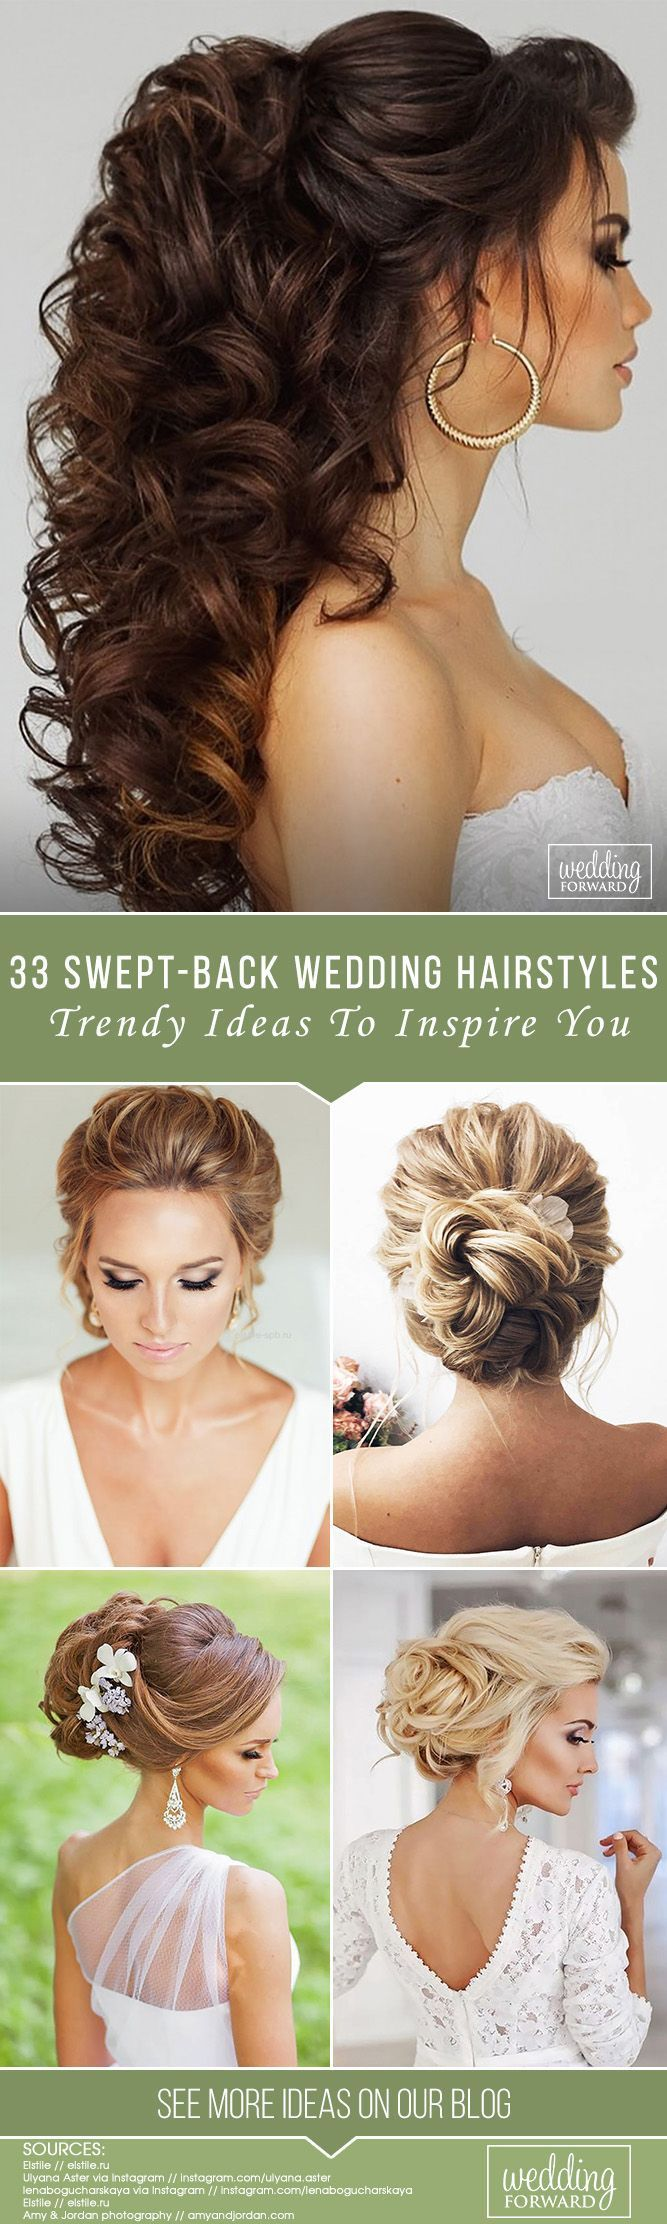 wedding hair styles 36 trendy swept back wedding hairstyles frisuren 3623